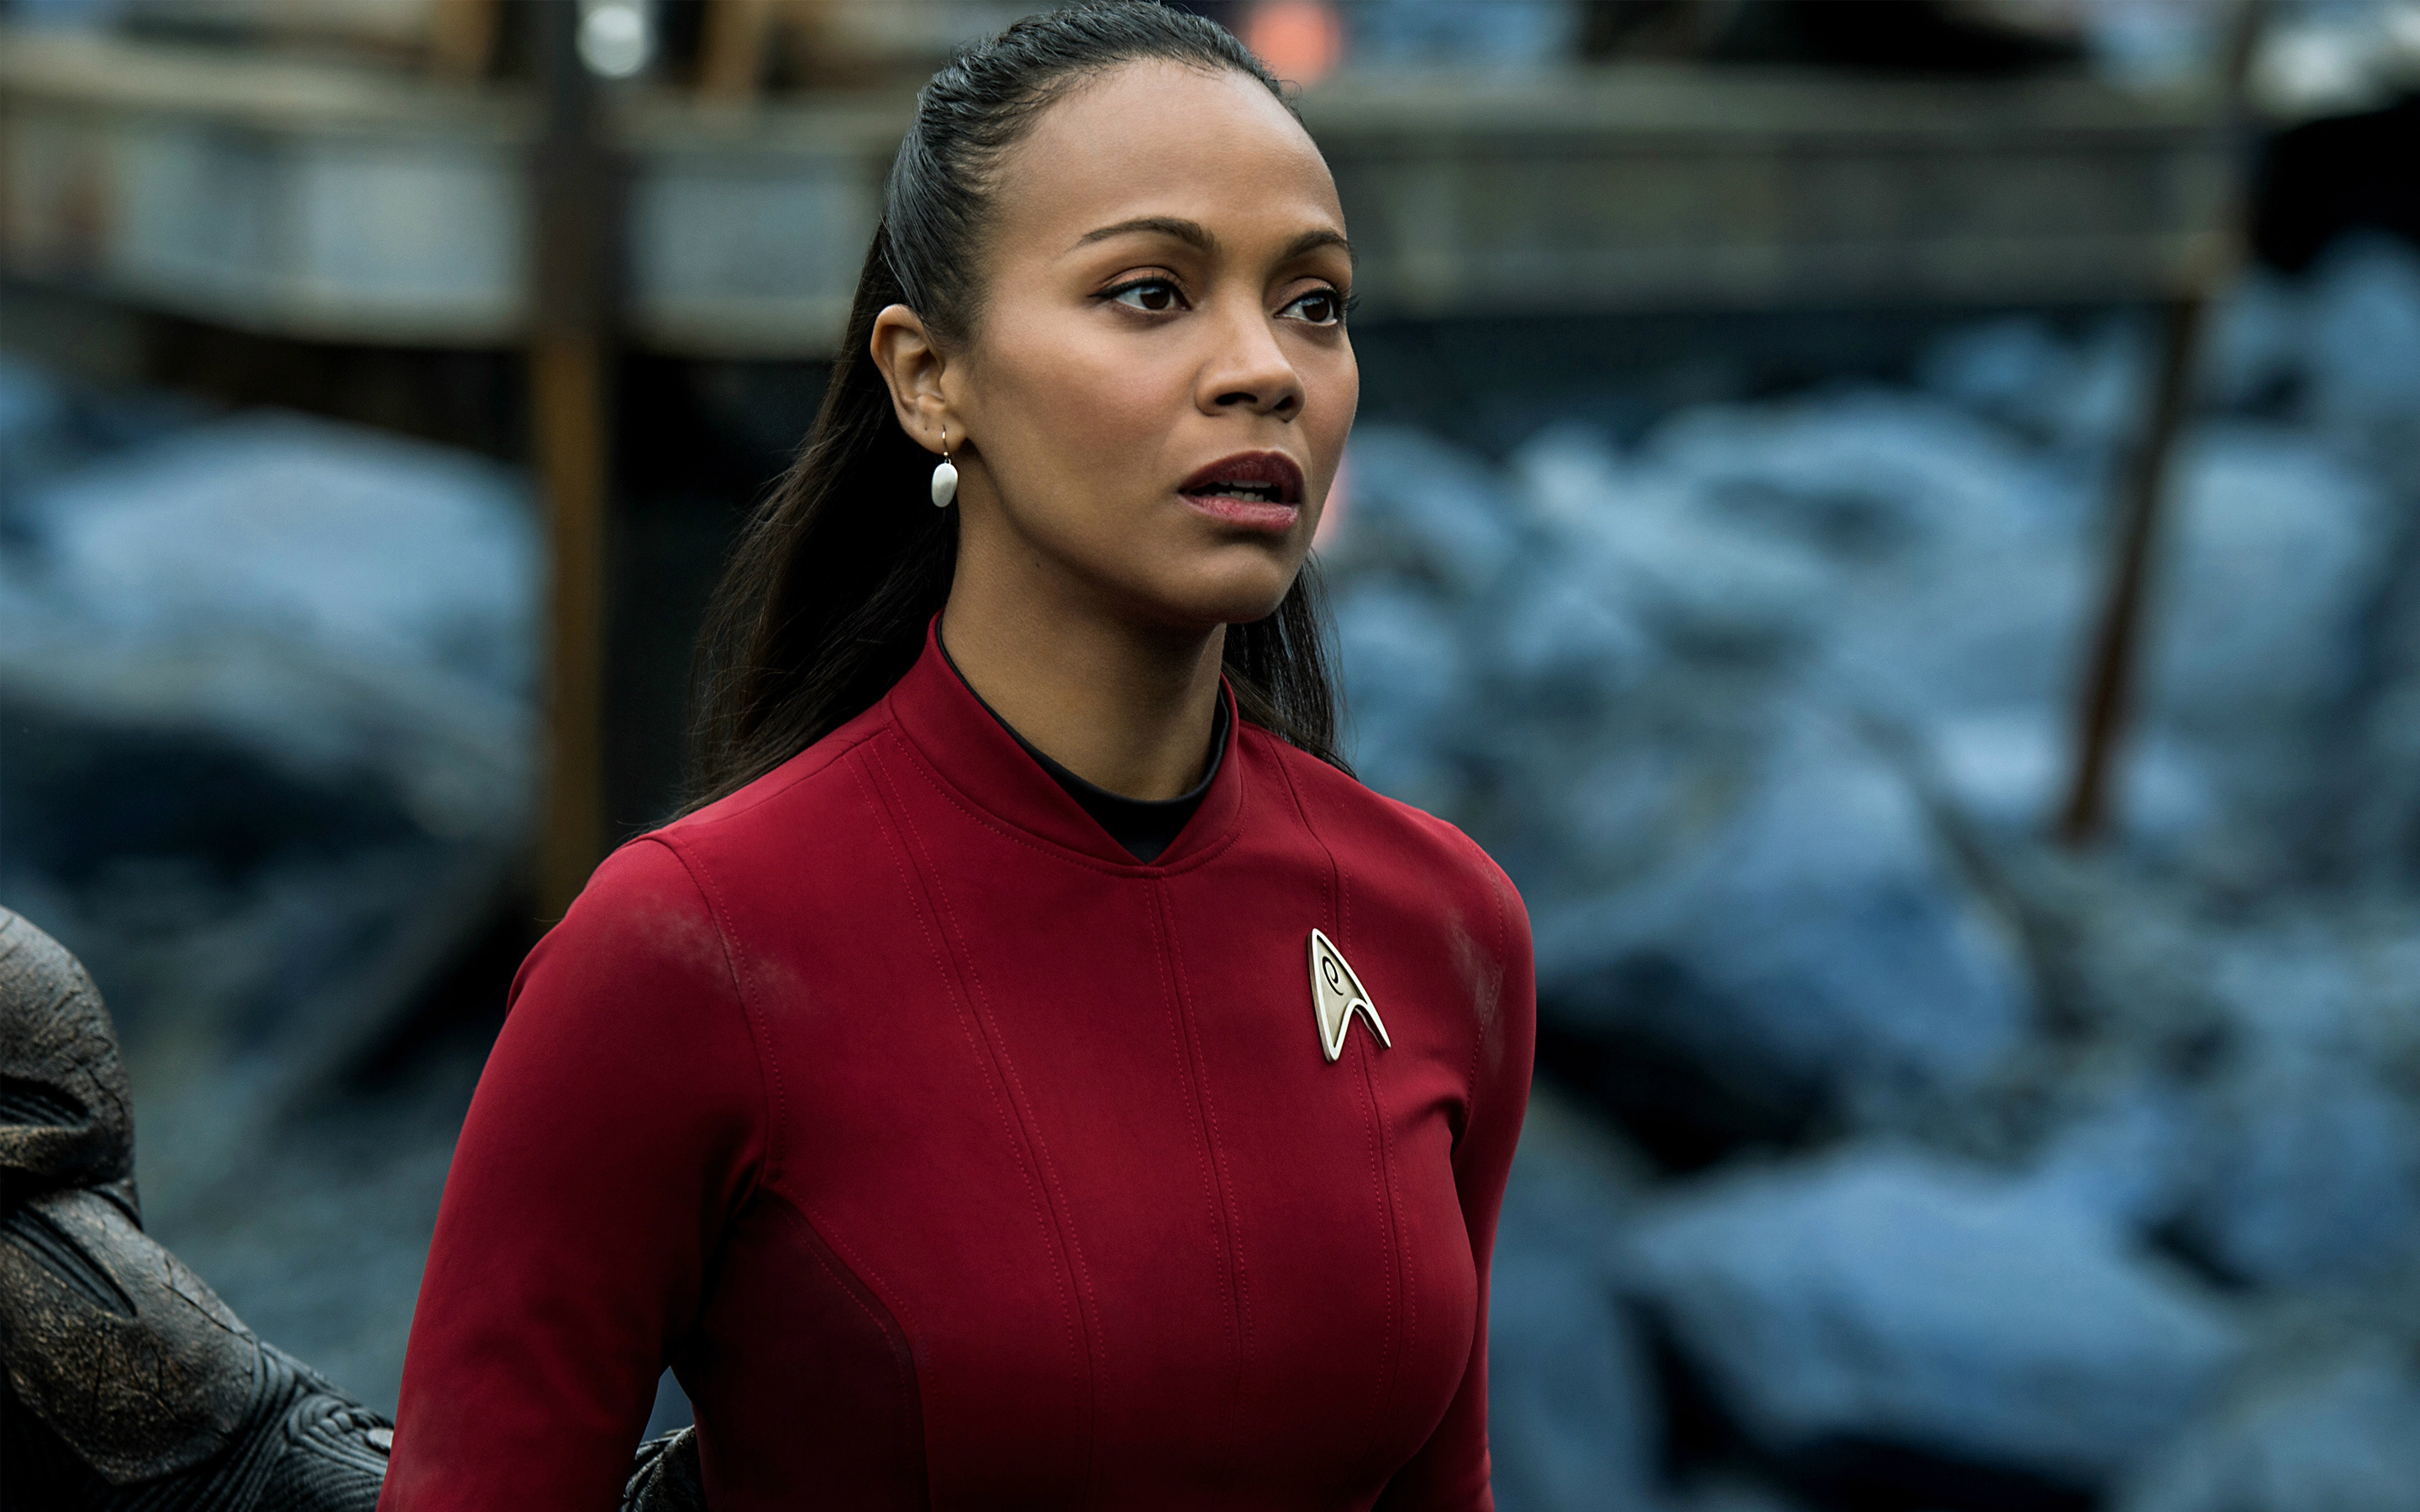 Zoe-Saldana-Uhura-Star-Trek-Beyond-Movie